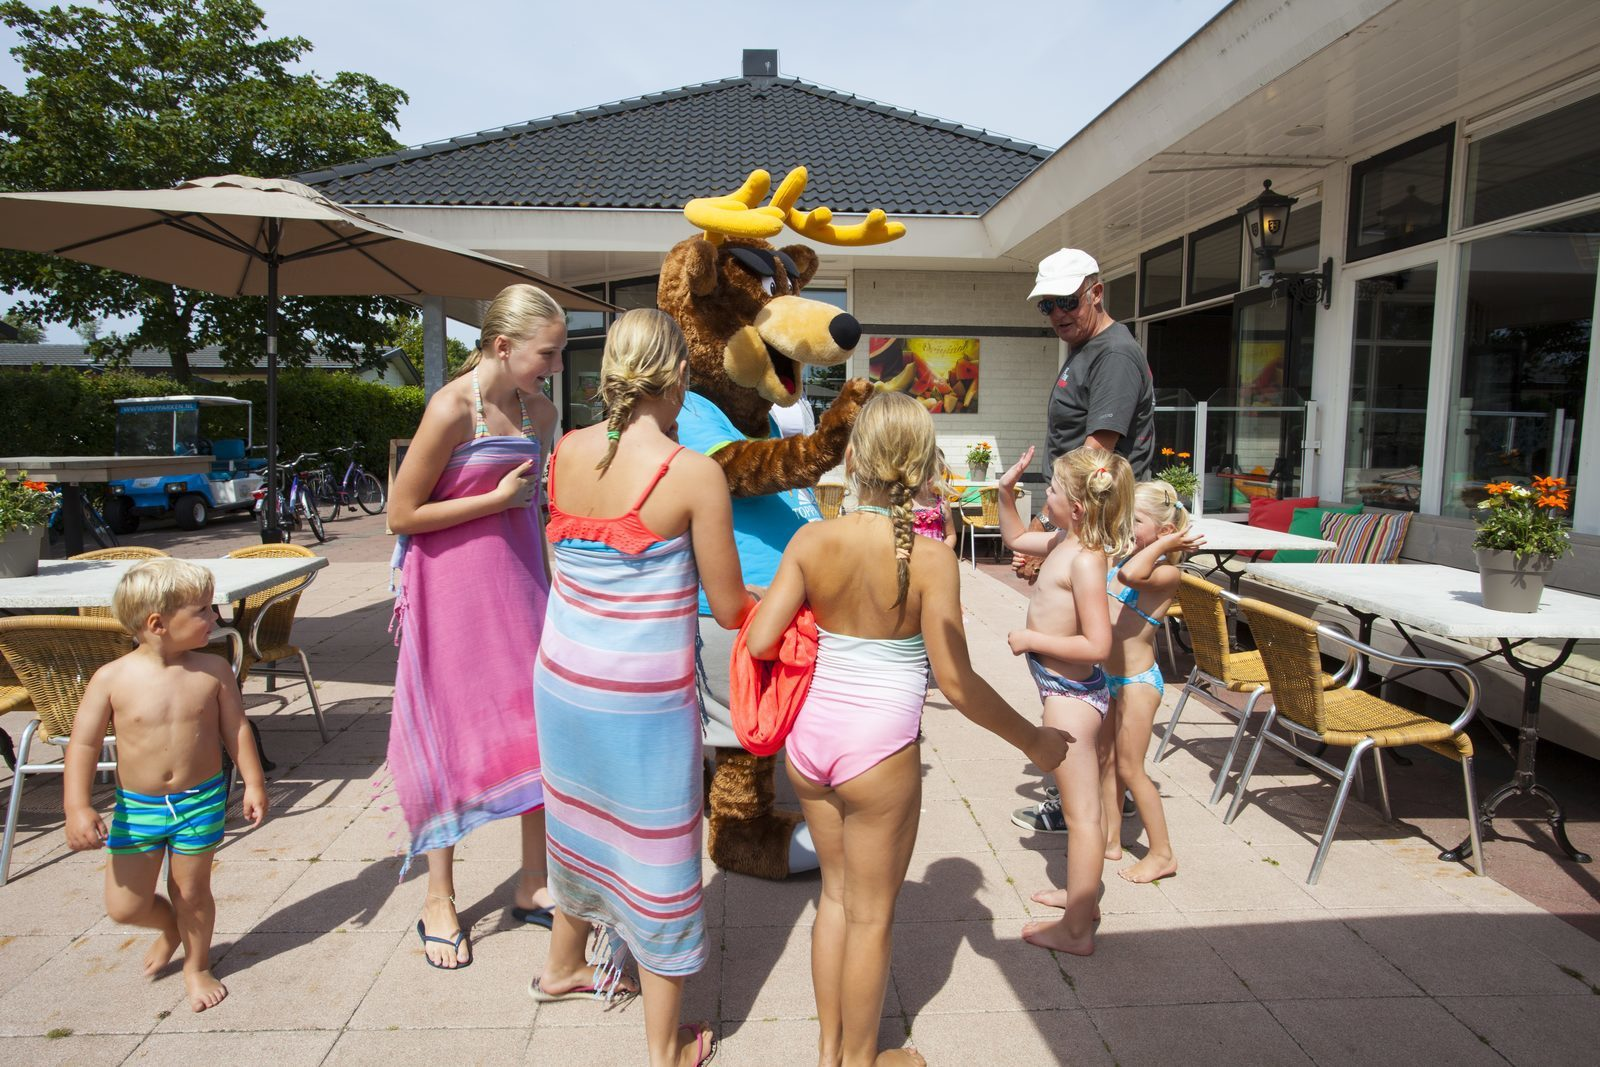 Toppe Bob at de Woudhoeve